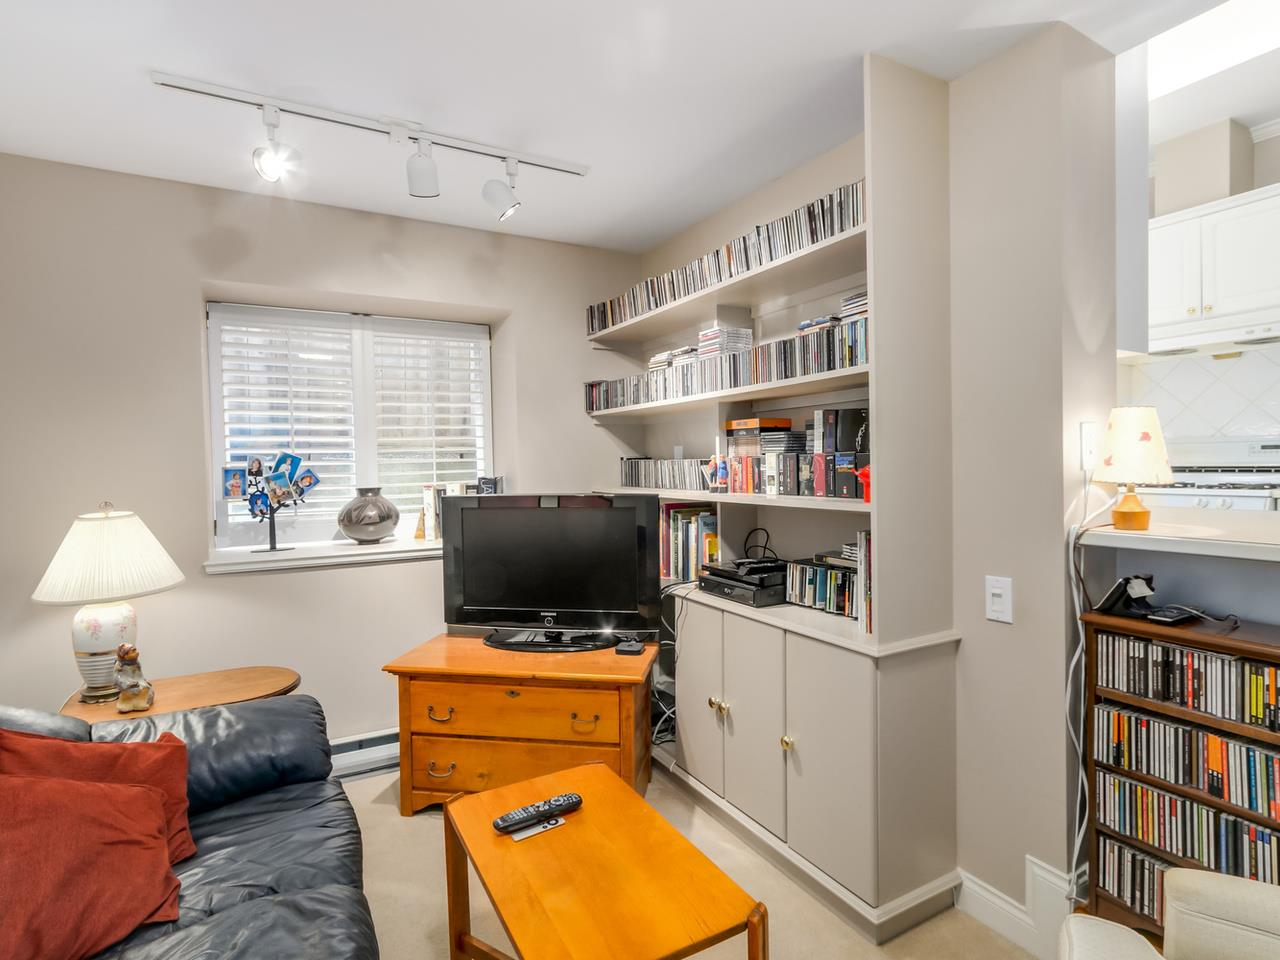 Photo 9: 1825 W 11TH Avenue in Vancouver: Kitsilano Townhouse for sale (Vancouver West)  : MLS® # R2061107